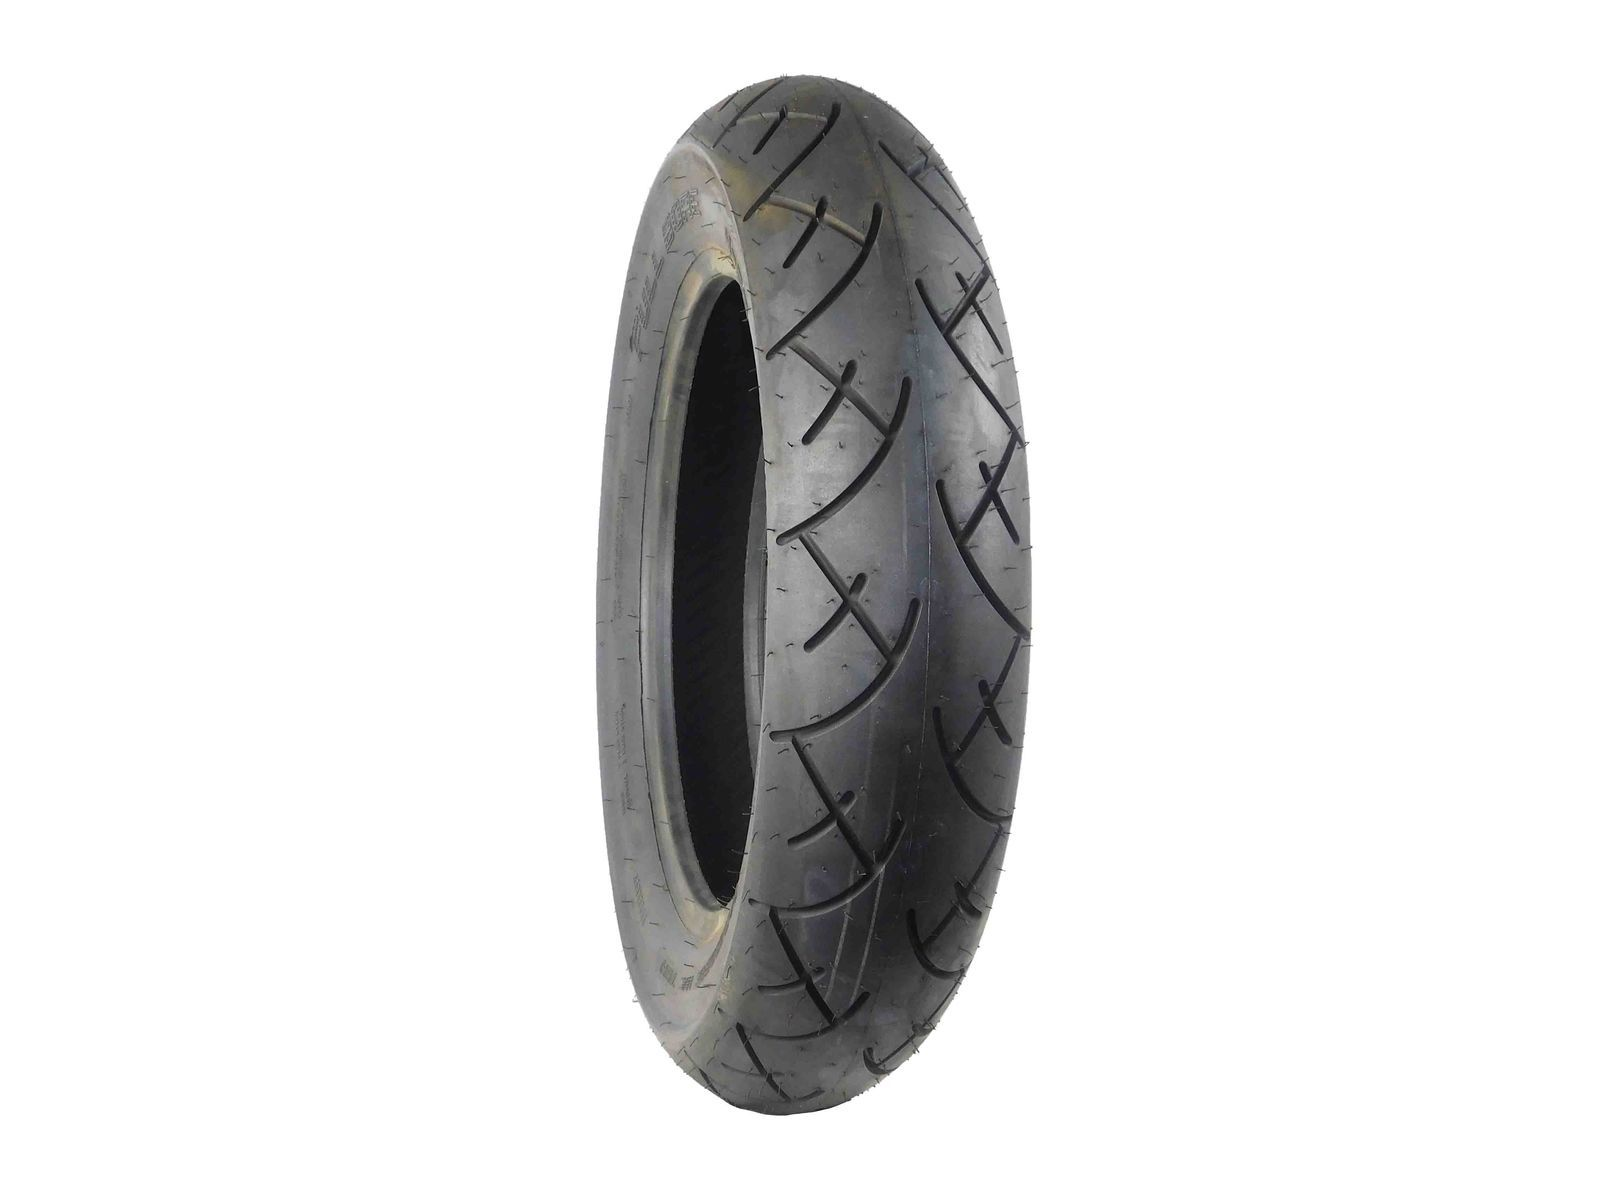 Full-Bore-80-90-21-Front-140-90-15-Rear-Set-Cruisers-Motorcycle-Tires-image-4